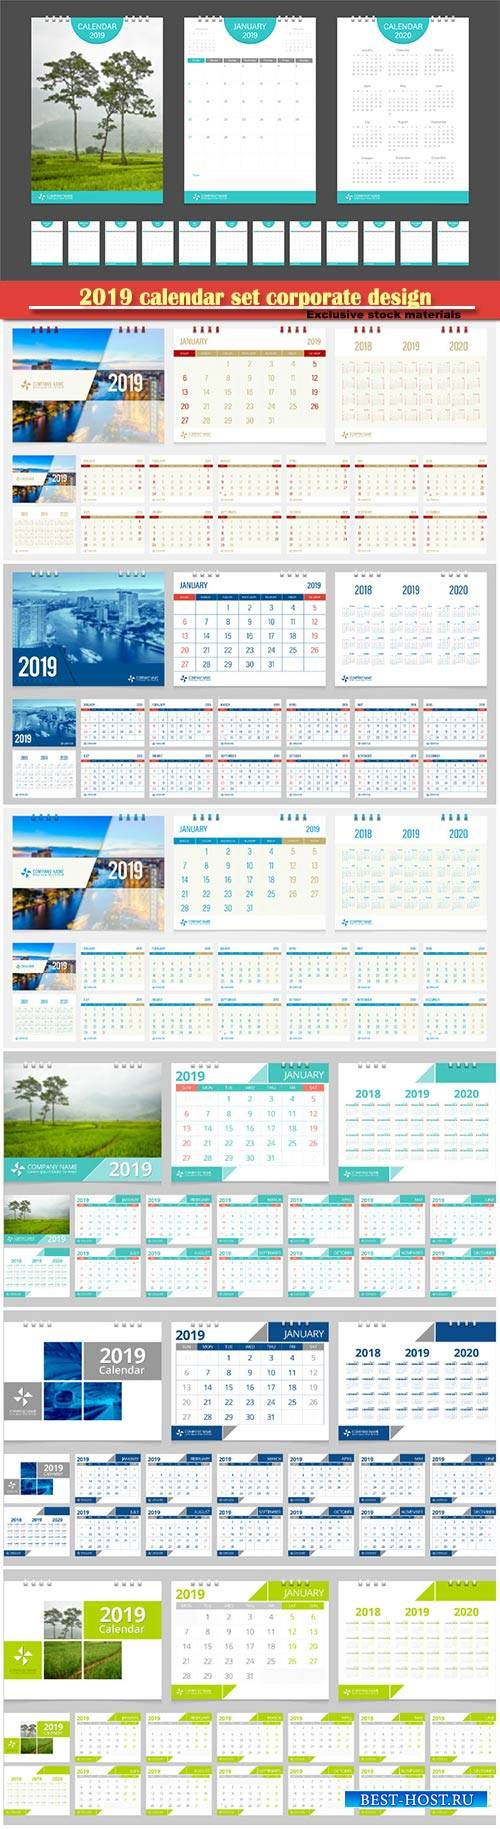 2019 calendar set corporate design template vector